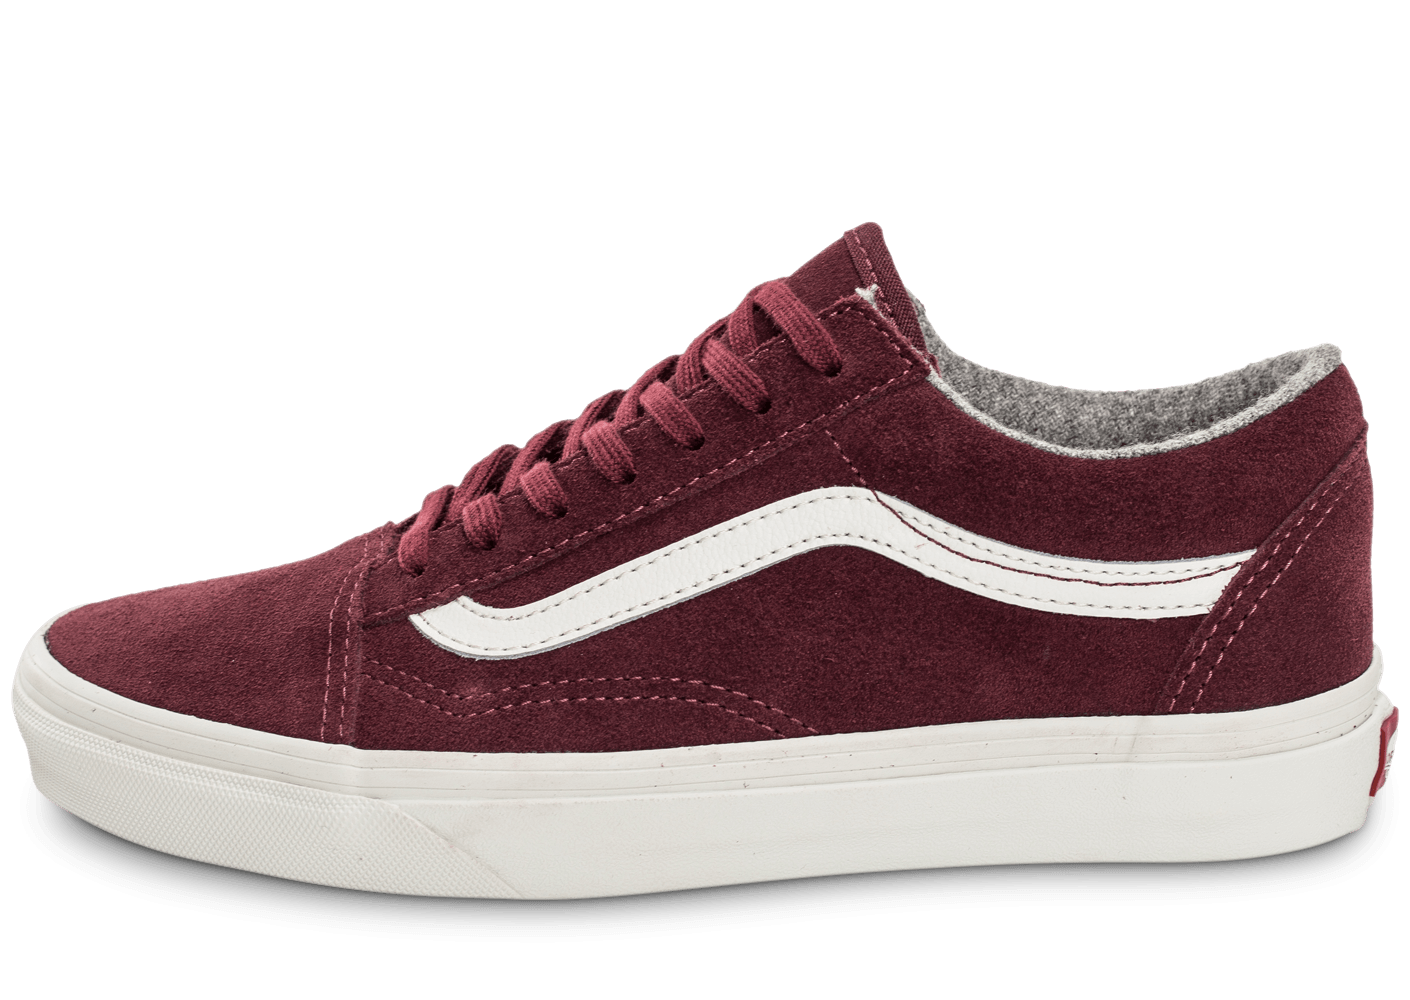 vans old skool suede bordeaux chaussures femme chausport. Black Bedroom Furniture Sets. Home Design Ideas